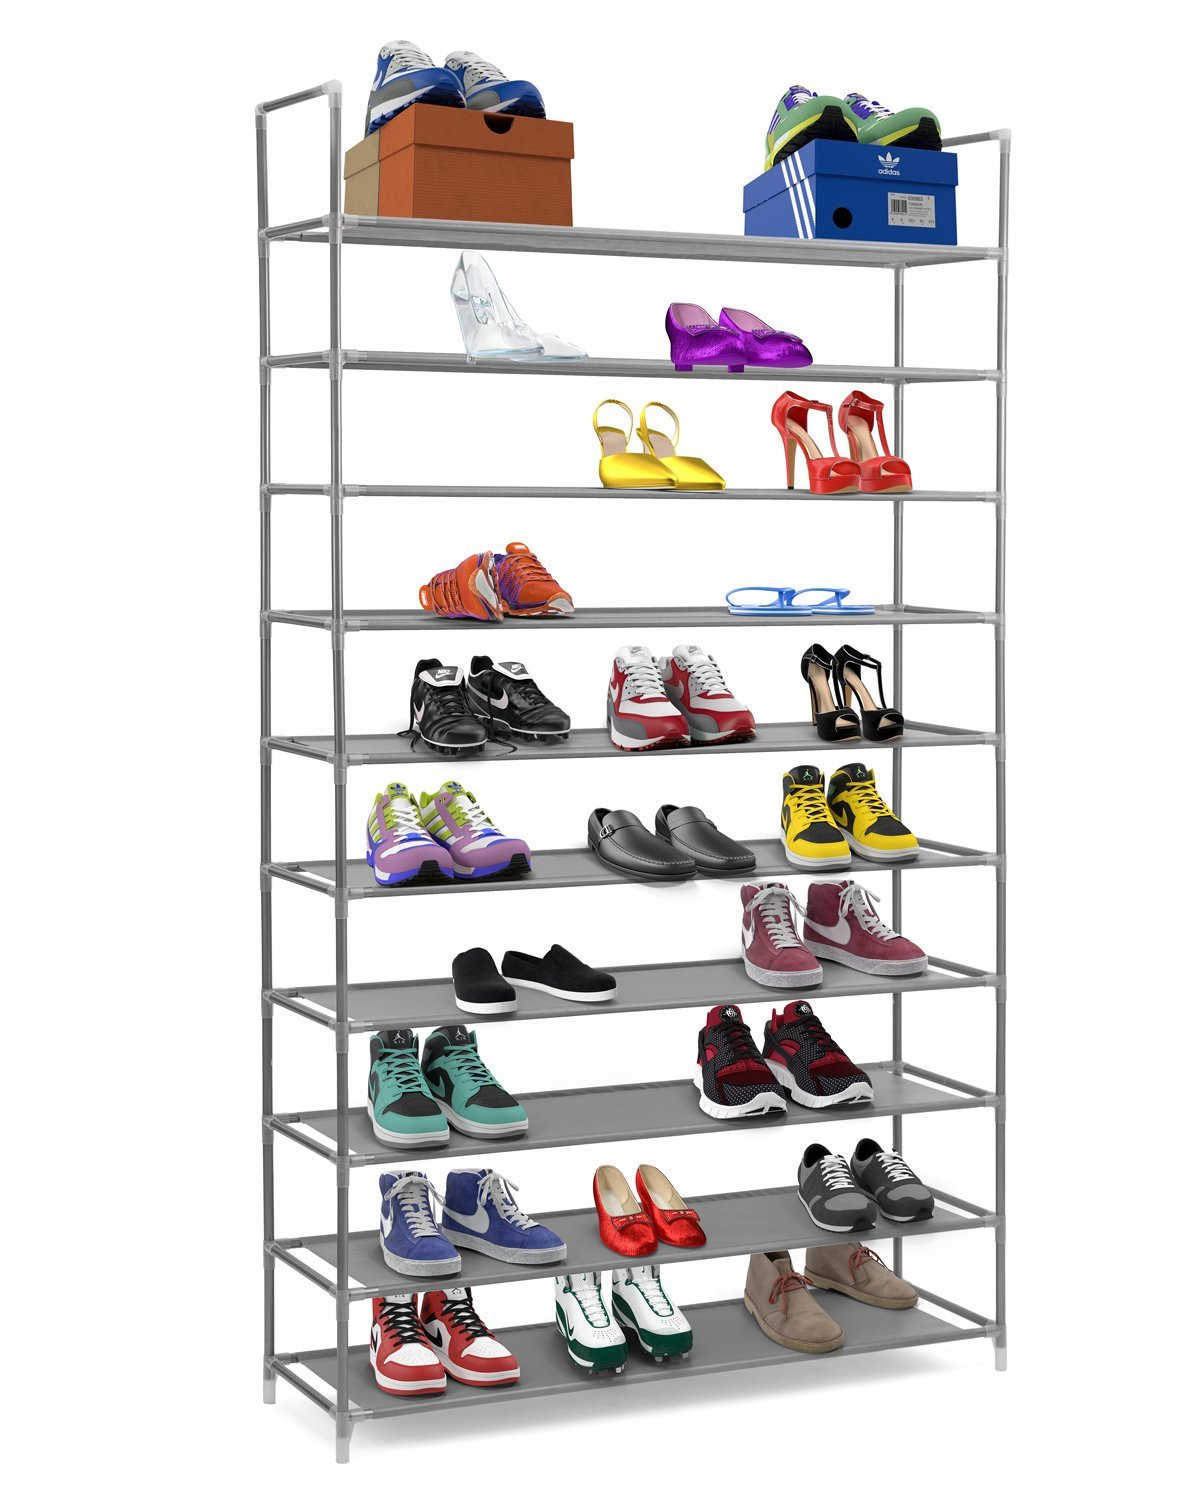 Highflow 10 Tier Stainless Steel Shoe Rack / Shoe Storage Stackable Shelves    Holds 50 Pairs